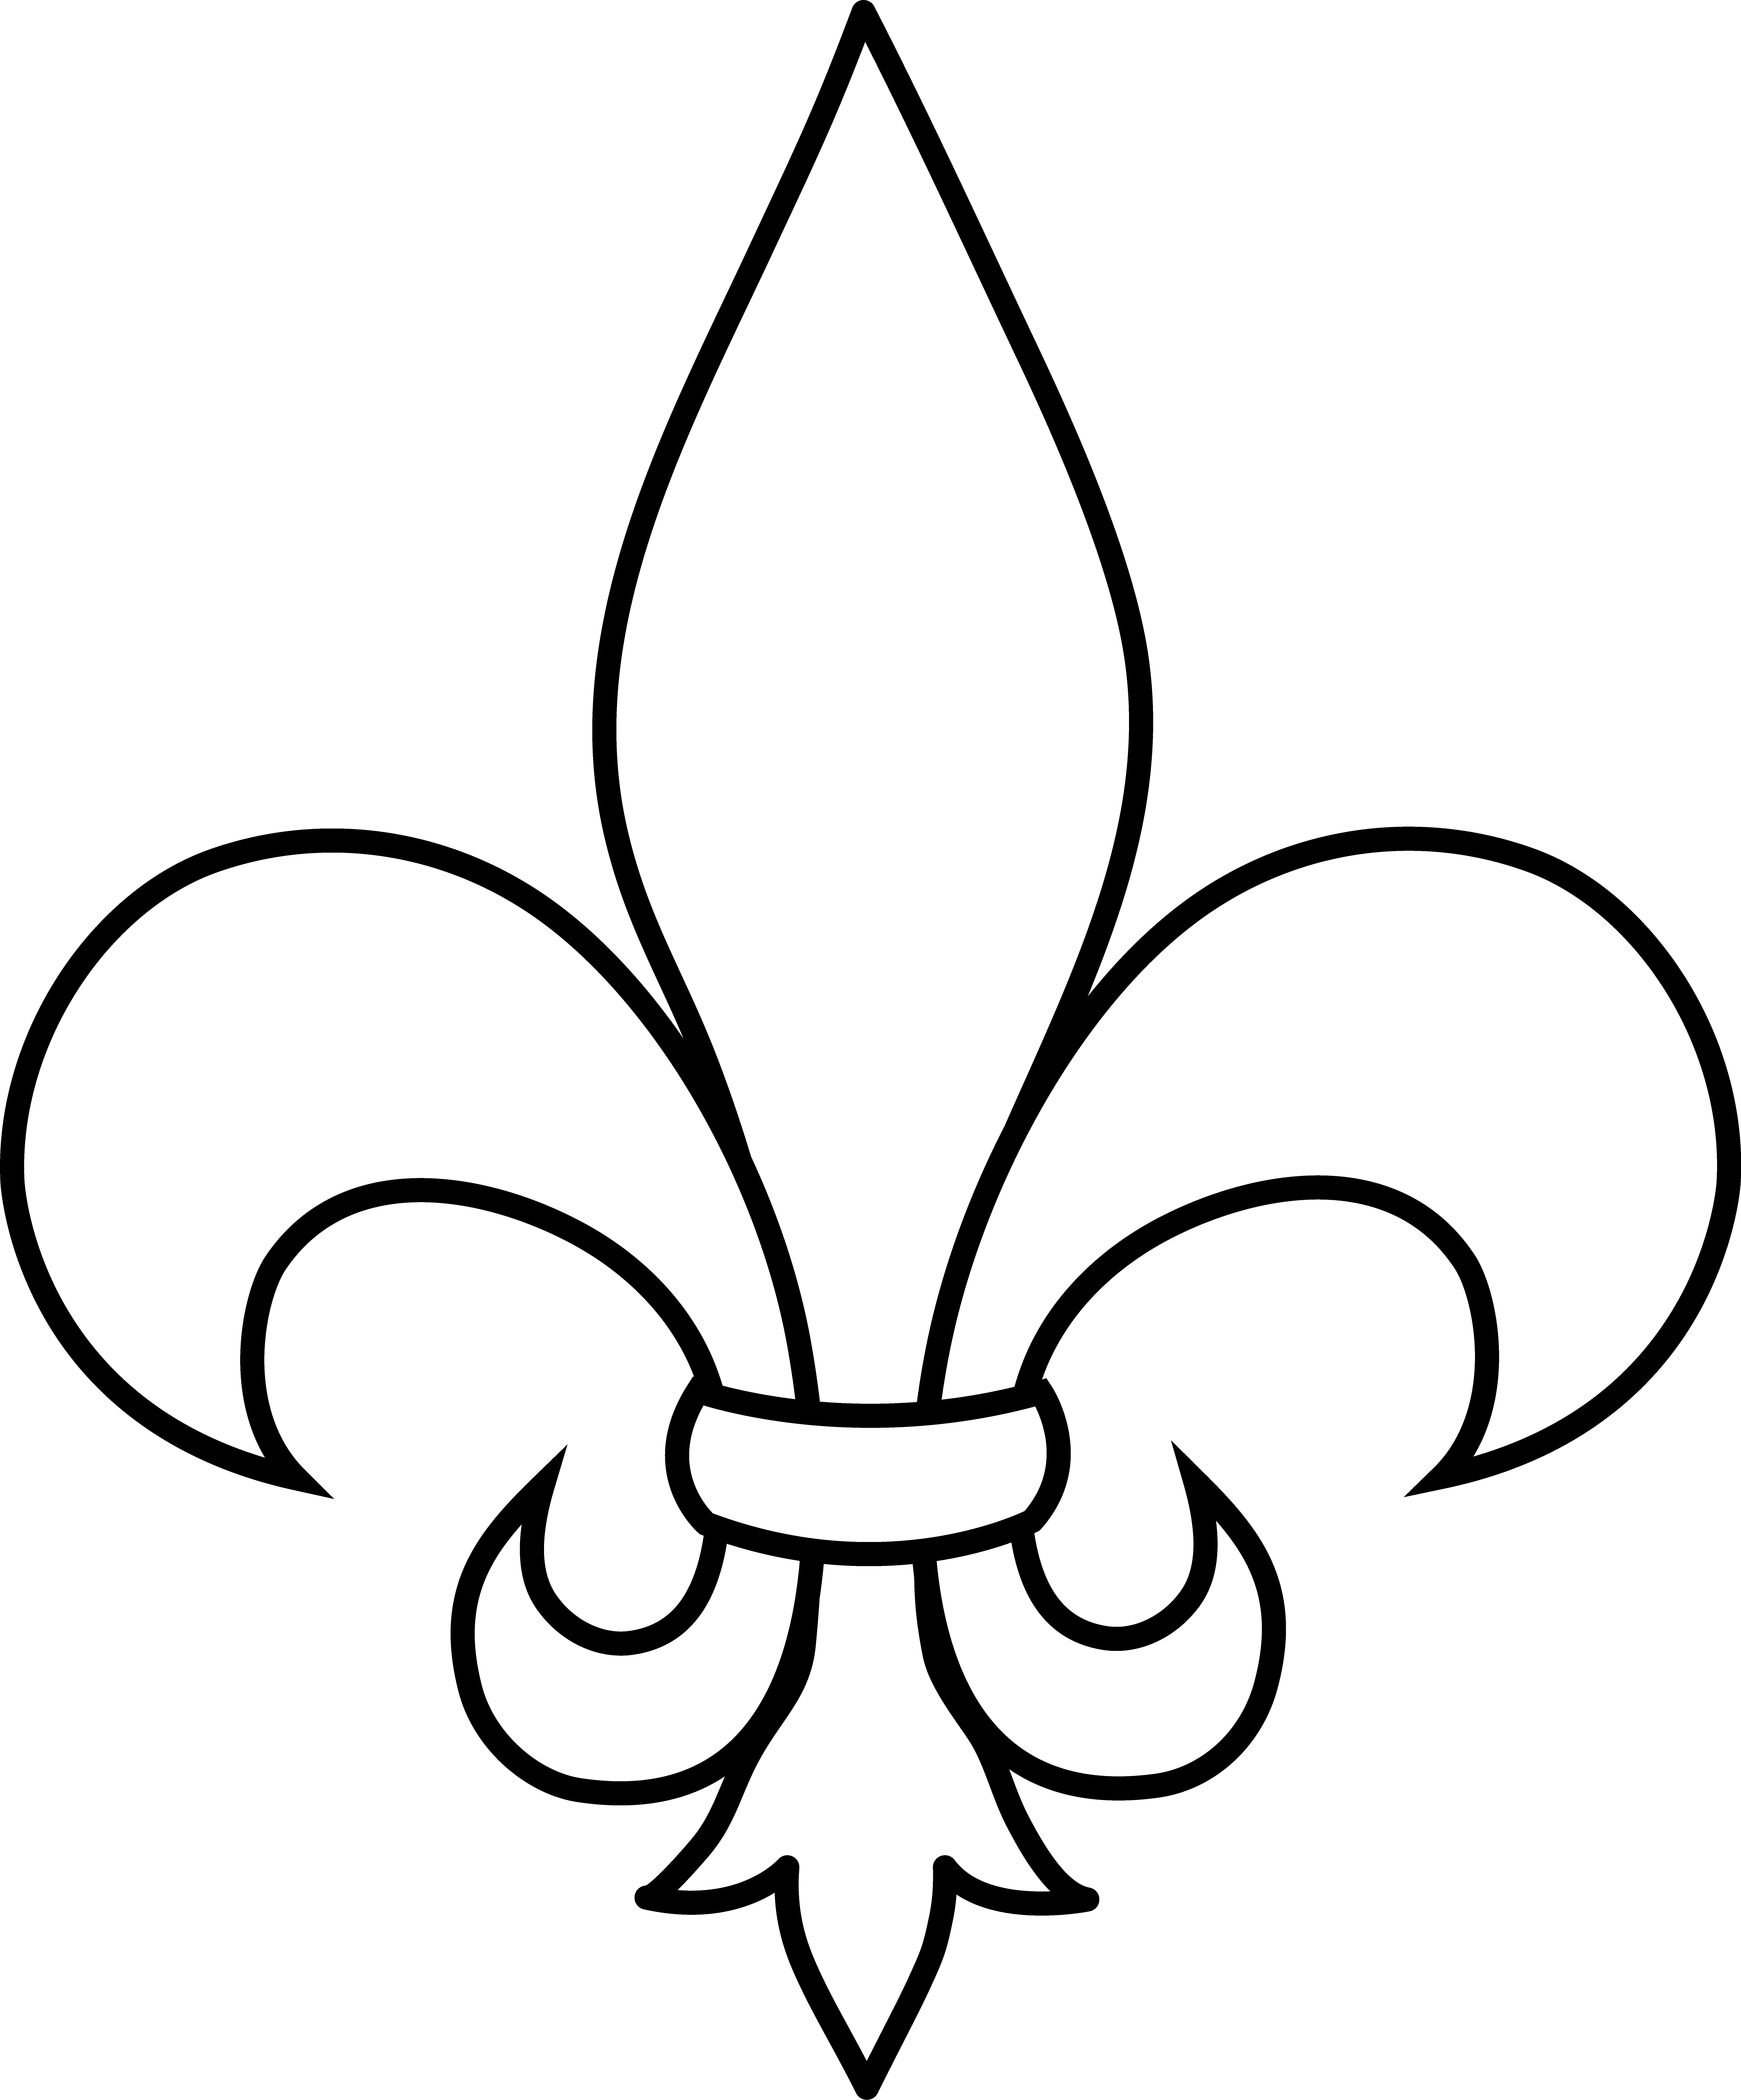 frrench free clip art | Black and White Fleur De Lis Outline ...